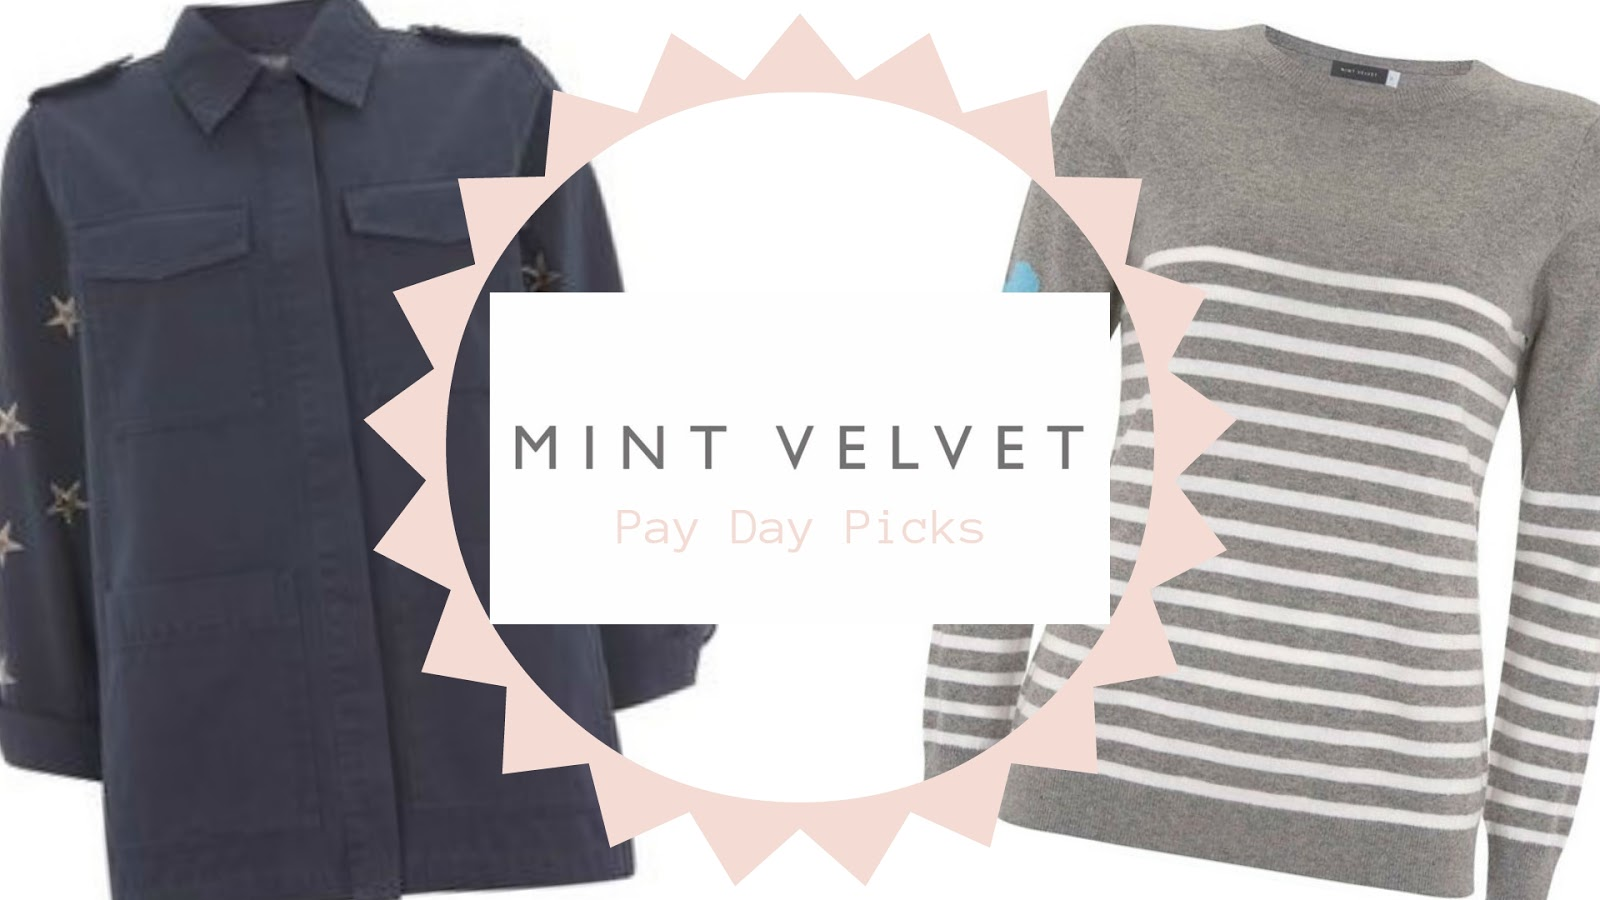 Pay Day Picks: Mint Velvet